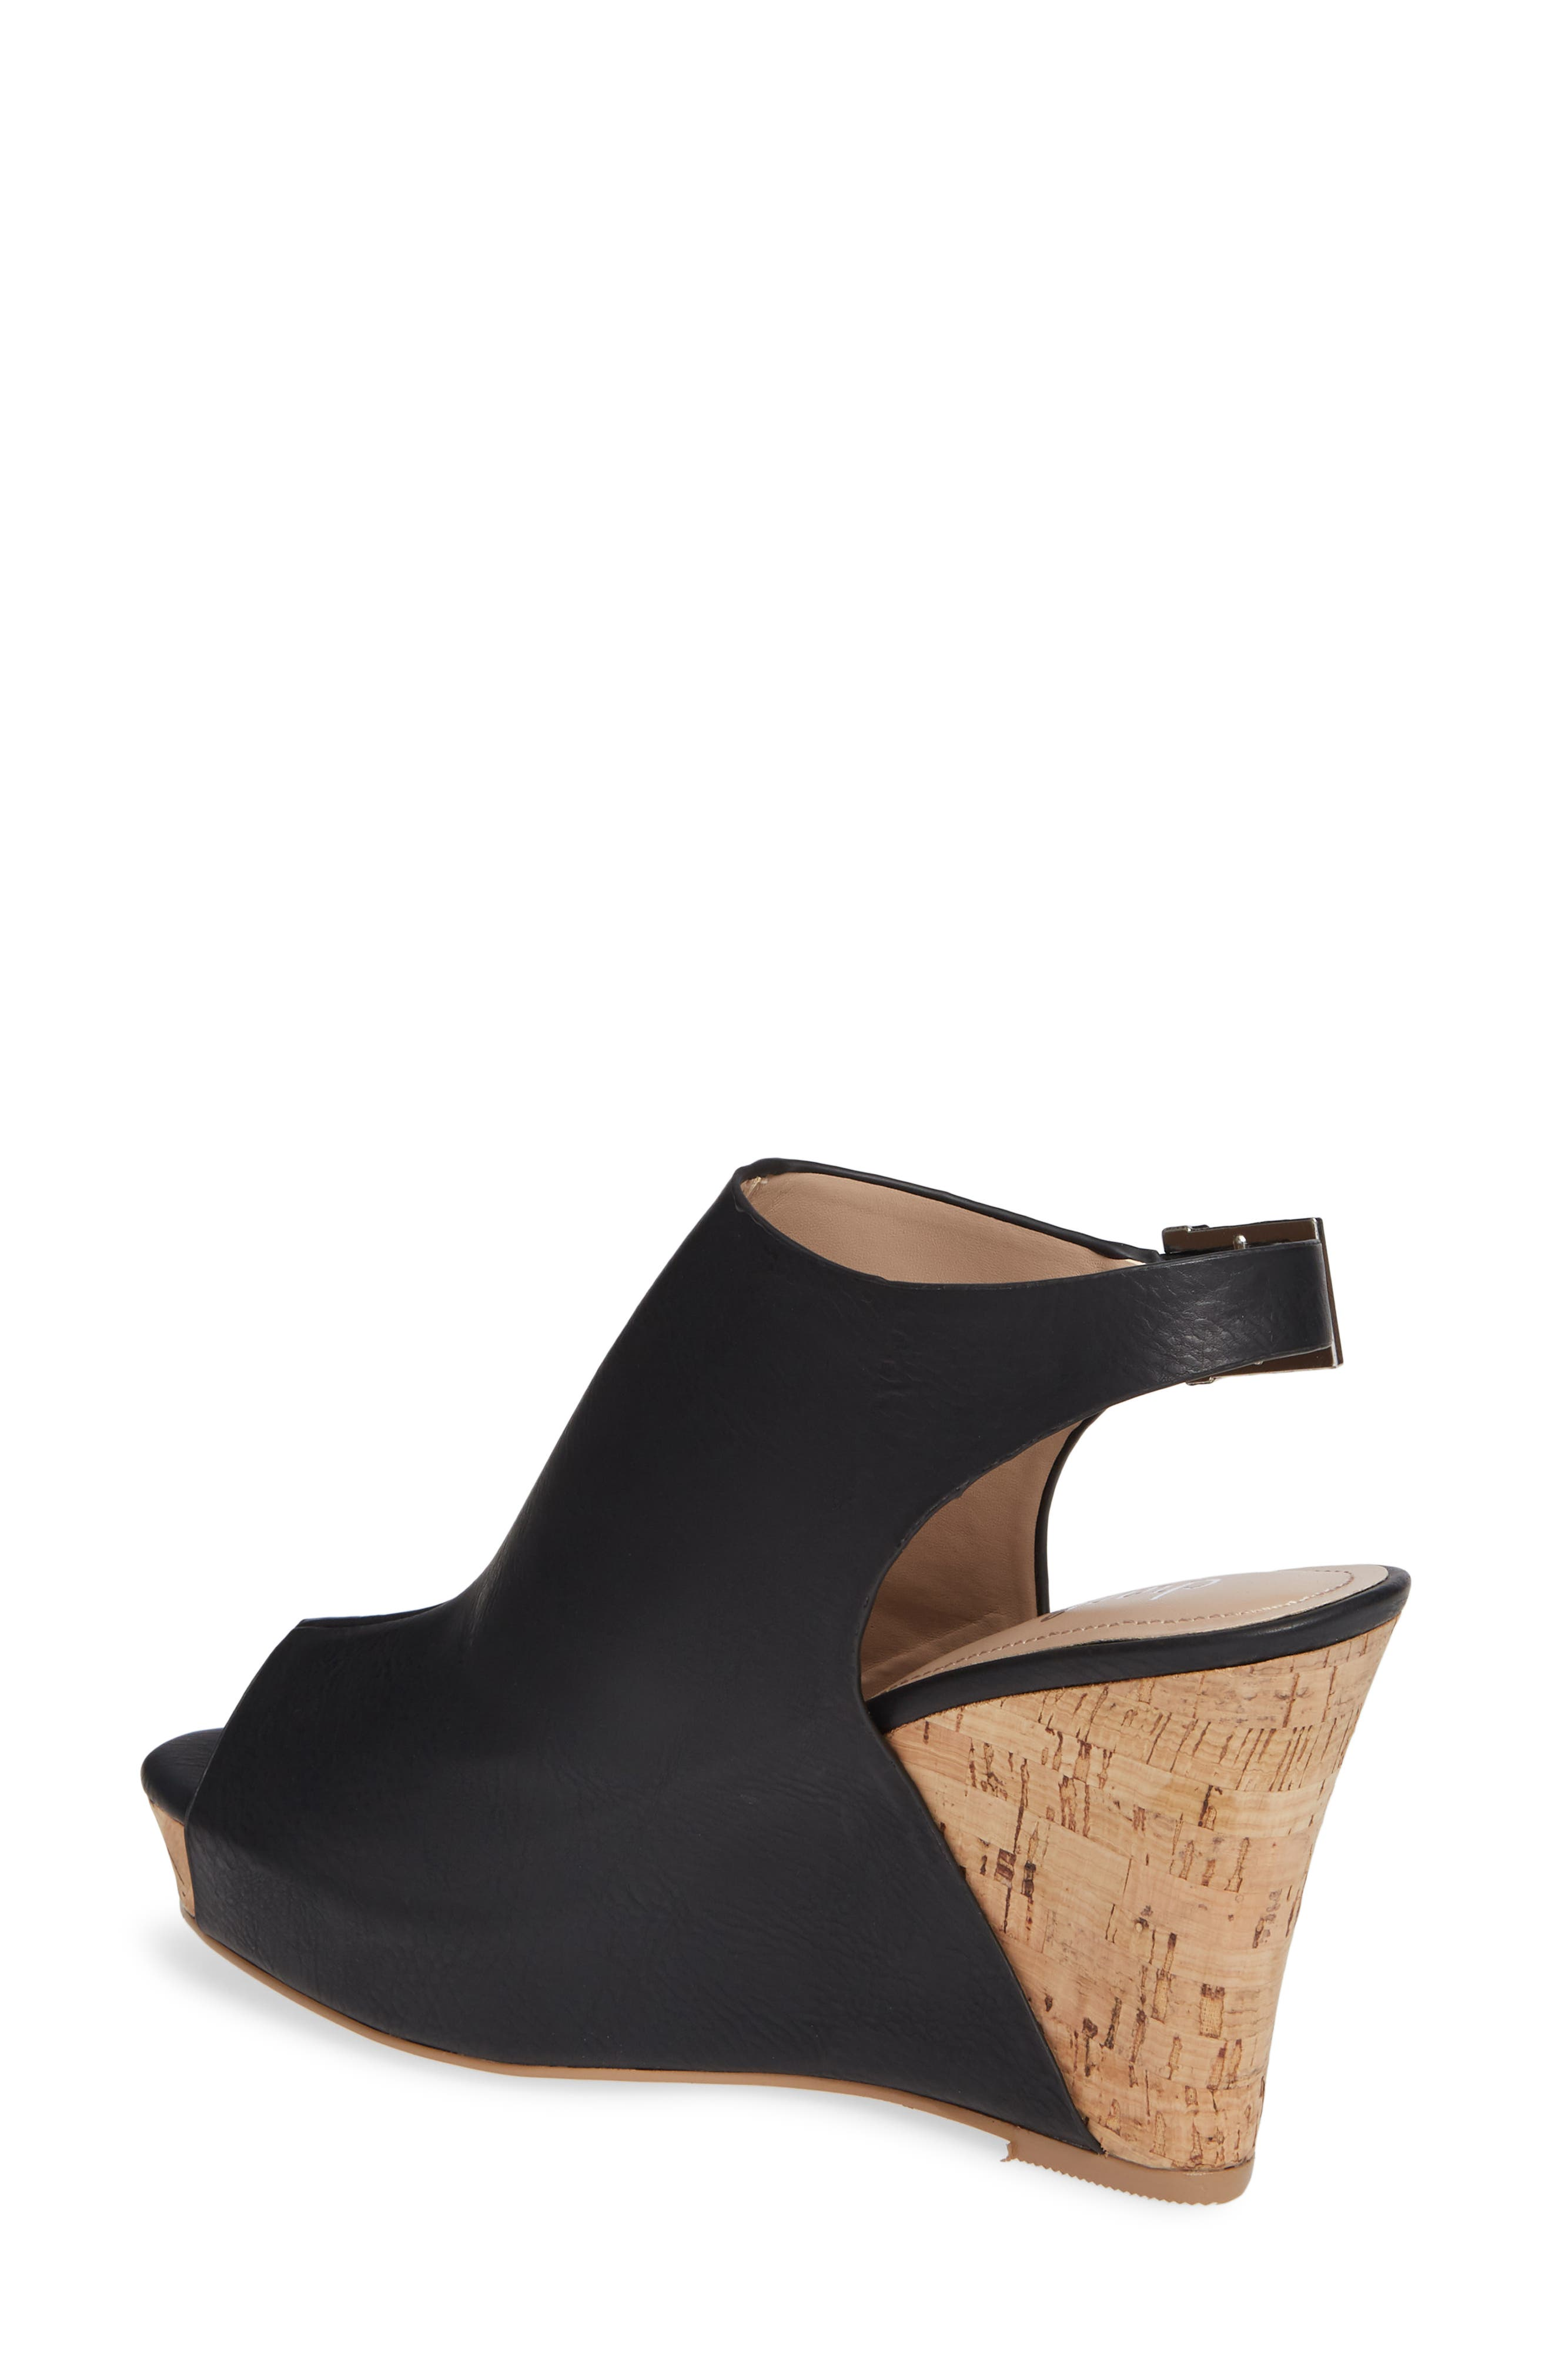 CHARLES BY CHARLES DAVID, Lobby Slingback Wedge Sandal, Alternate thumbnail 2, color, BLACK FAUX LEATHER